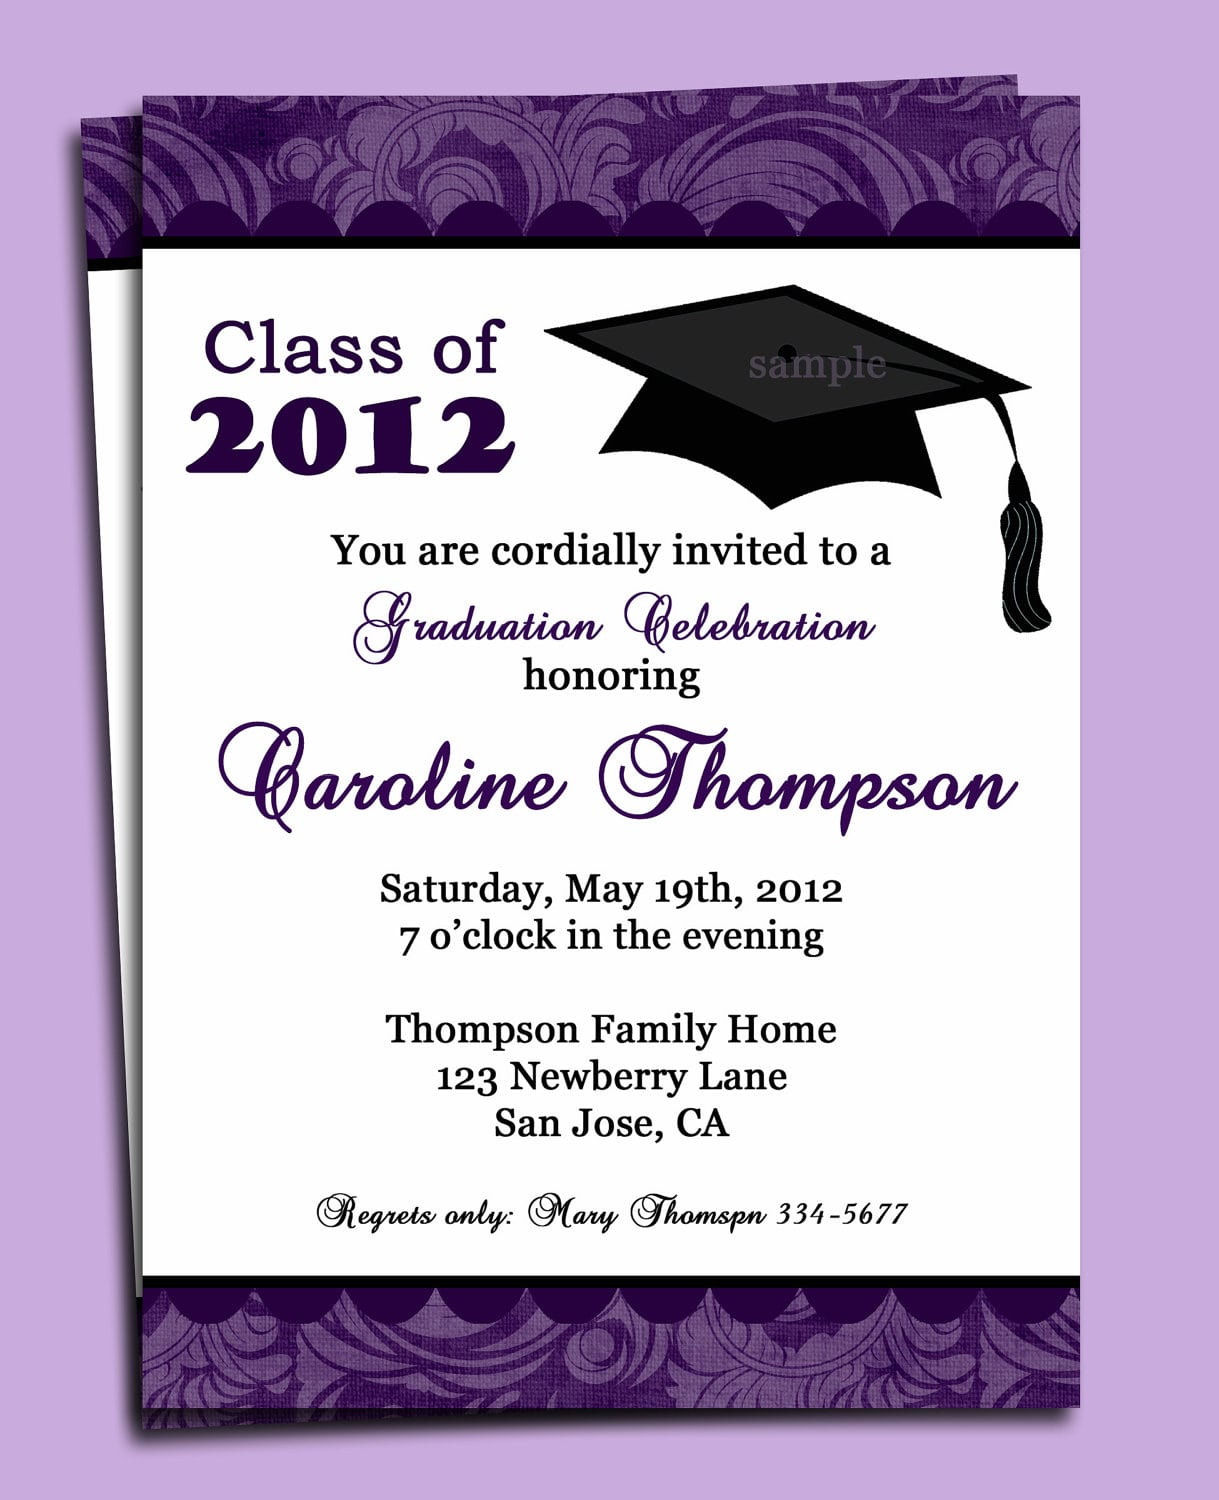 Invitation For Graduation Party Cards Ideas With Invitation For